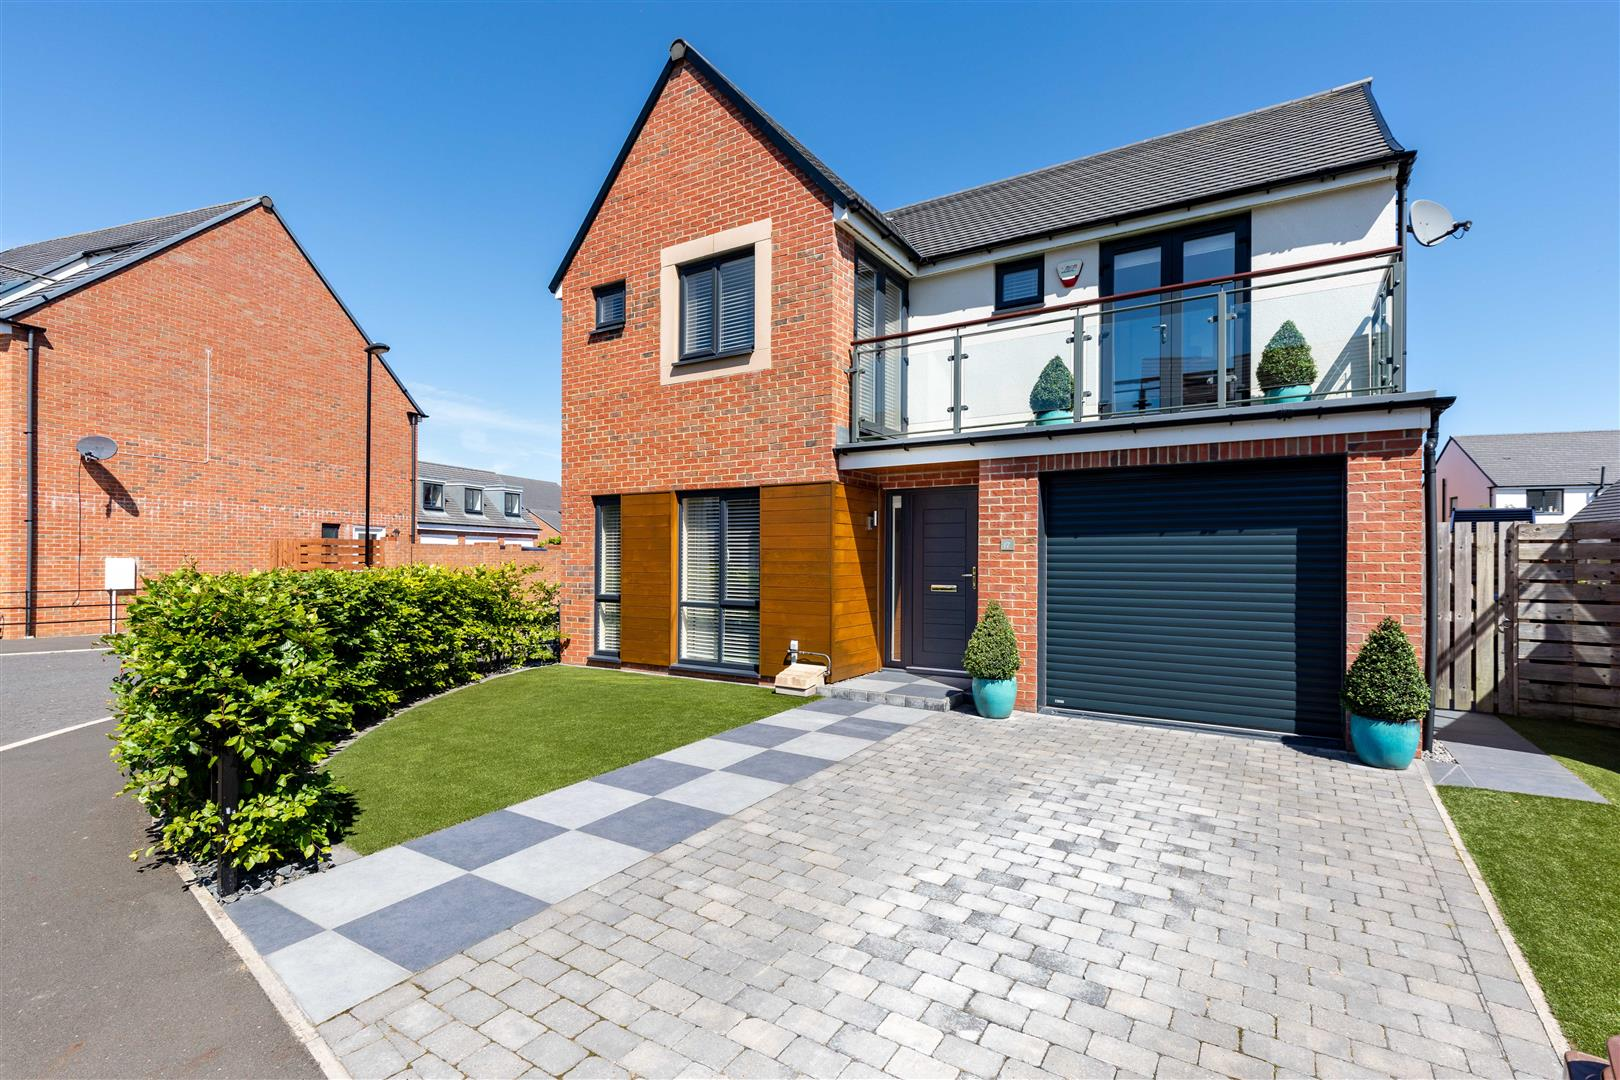 4 bed detached house for sale in Newcastle Upon Tyne, NE13 9AX, NE13